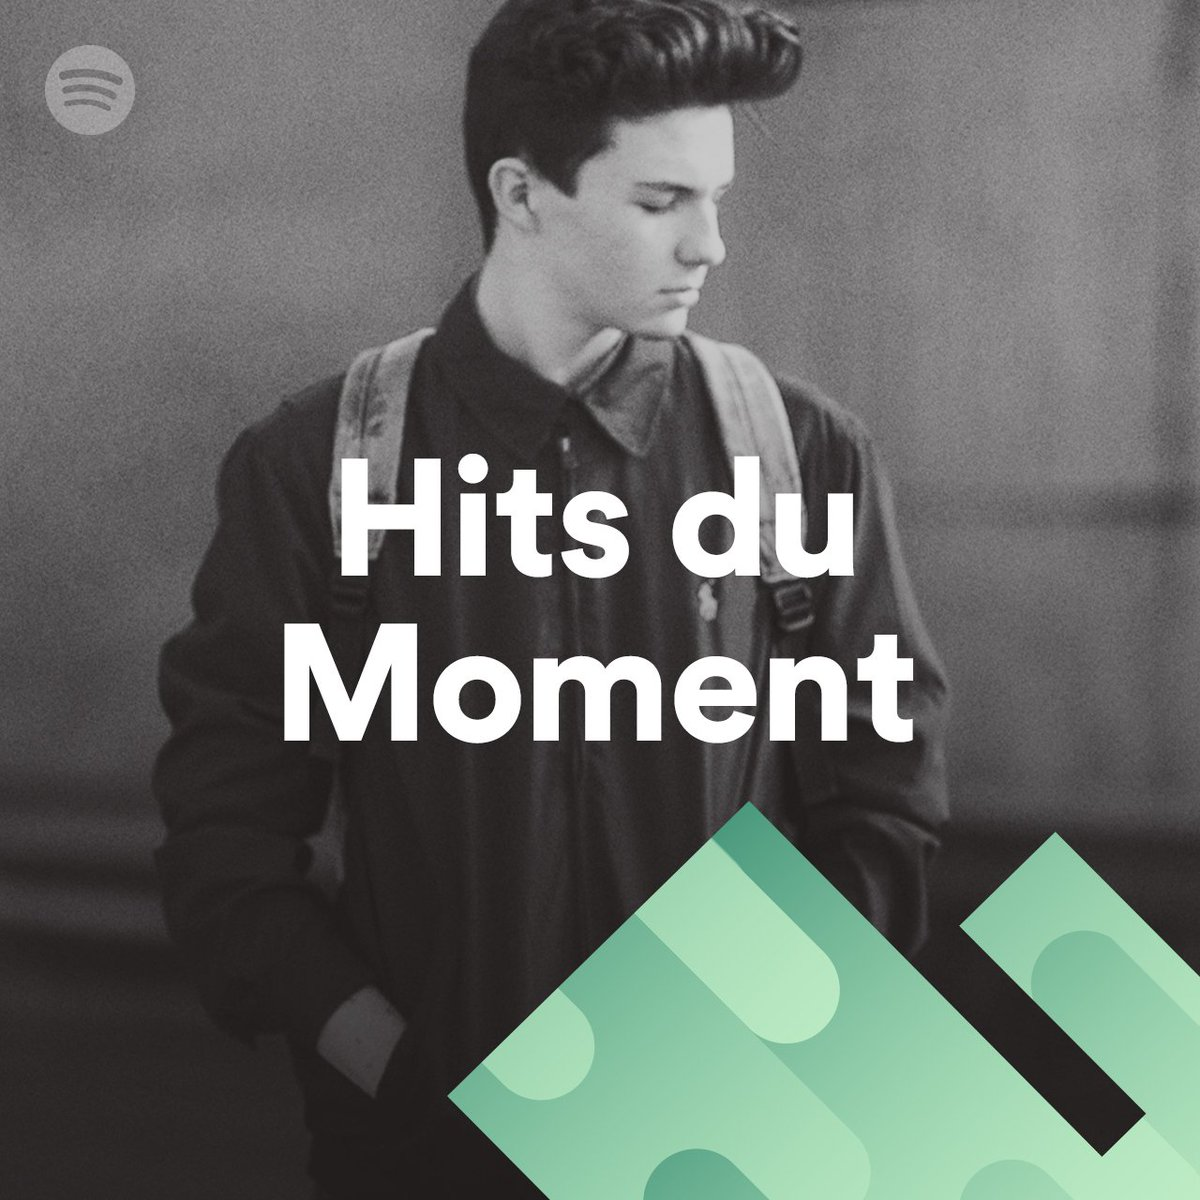 PETIT BISCUIT on Twitter: